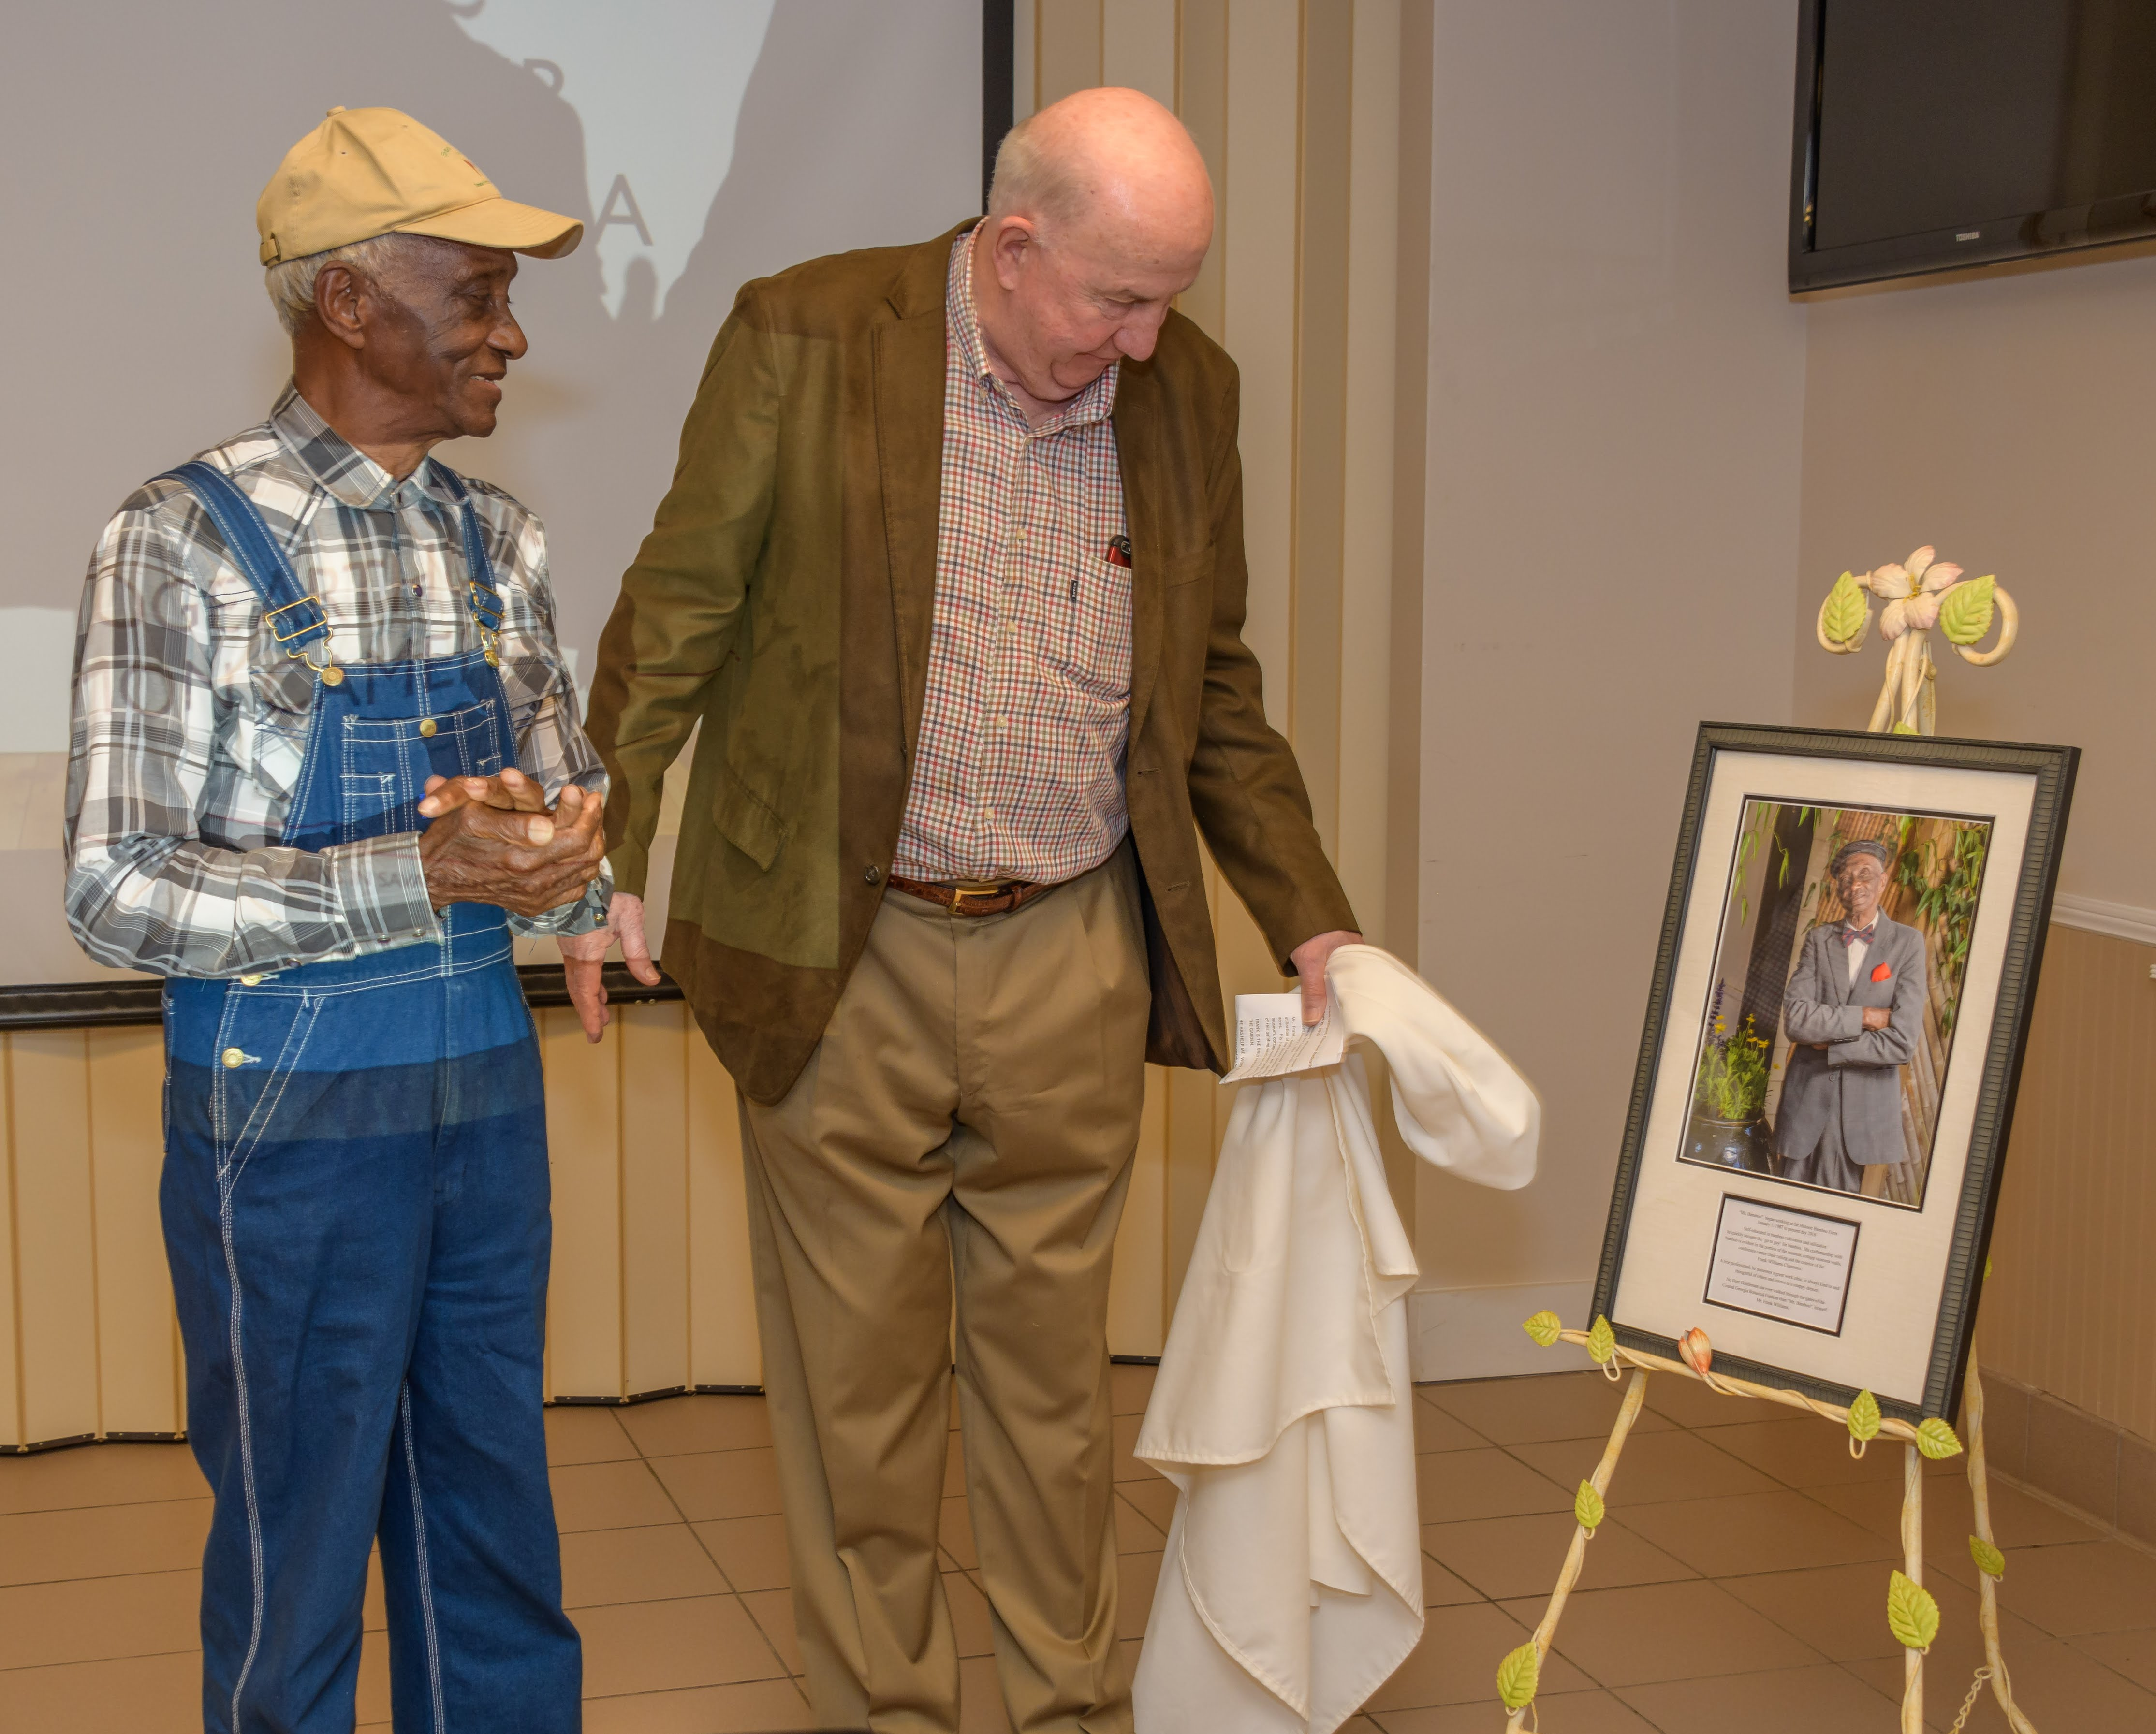 The Friends of the Coastal Gardens (FOCG) recently named a classroom in honor of retired groundskeeper Frank Williams. The Friends wanted to show their appreciation for the 30 years of hard work and dedication he gave to the University of Georgia Coastal Georgia Botanical Garden at the Historic Bamboo Farm in Savannah, Georgia. Williams is shown (left) watching FOCG President Dr. Jim Andrews unveil one of three photographs that now adorn the walls of the Frank Williams Classroom.